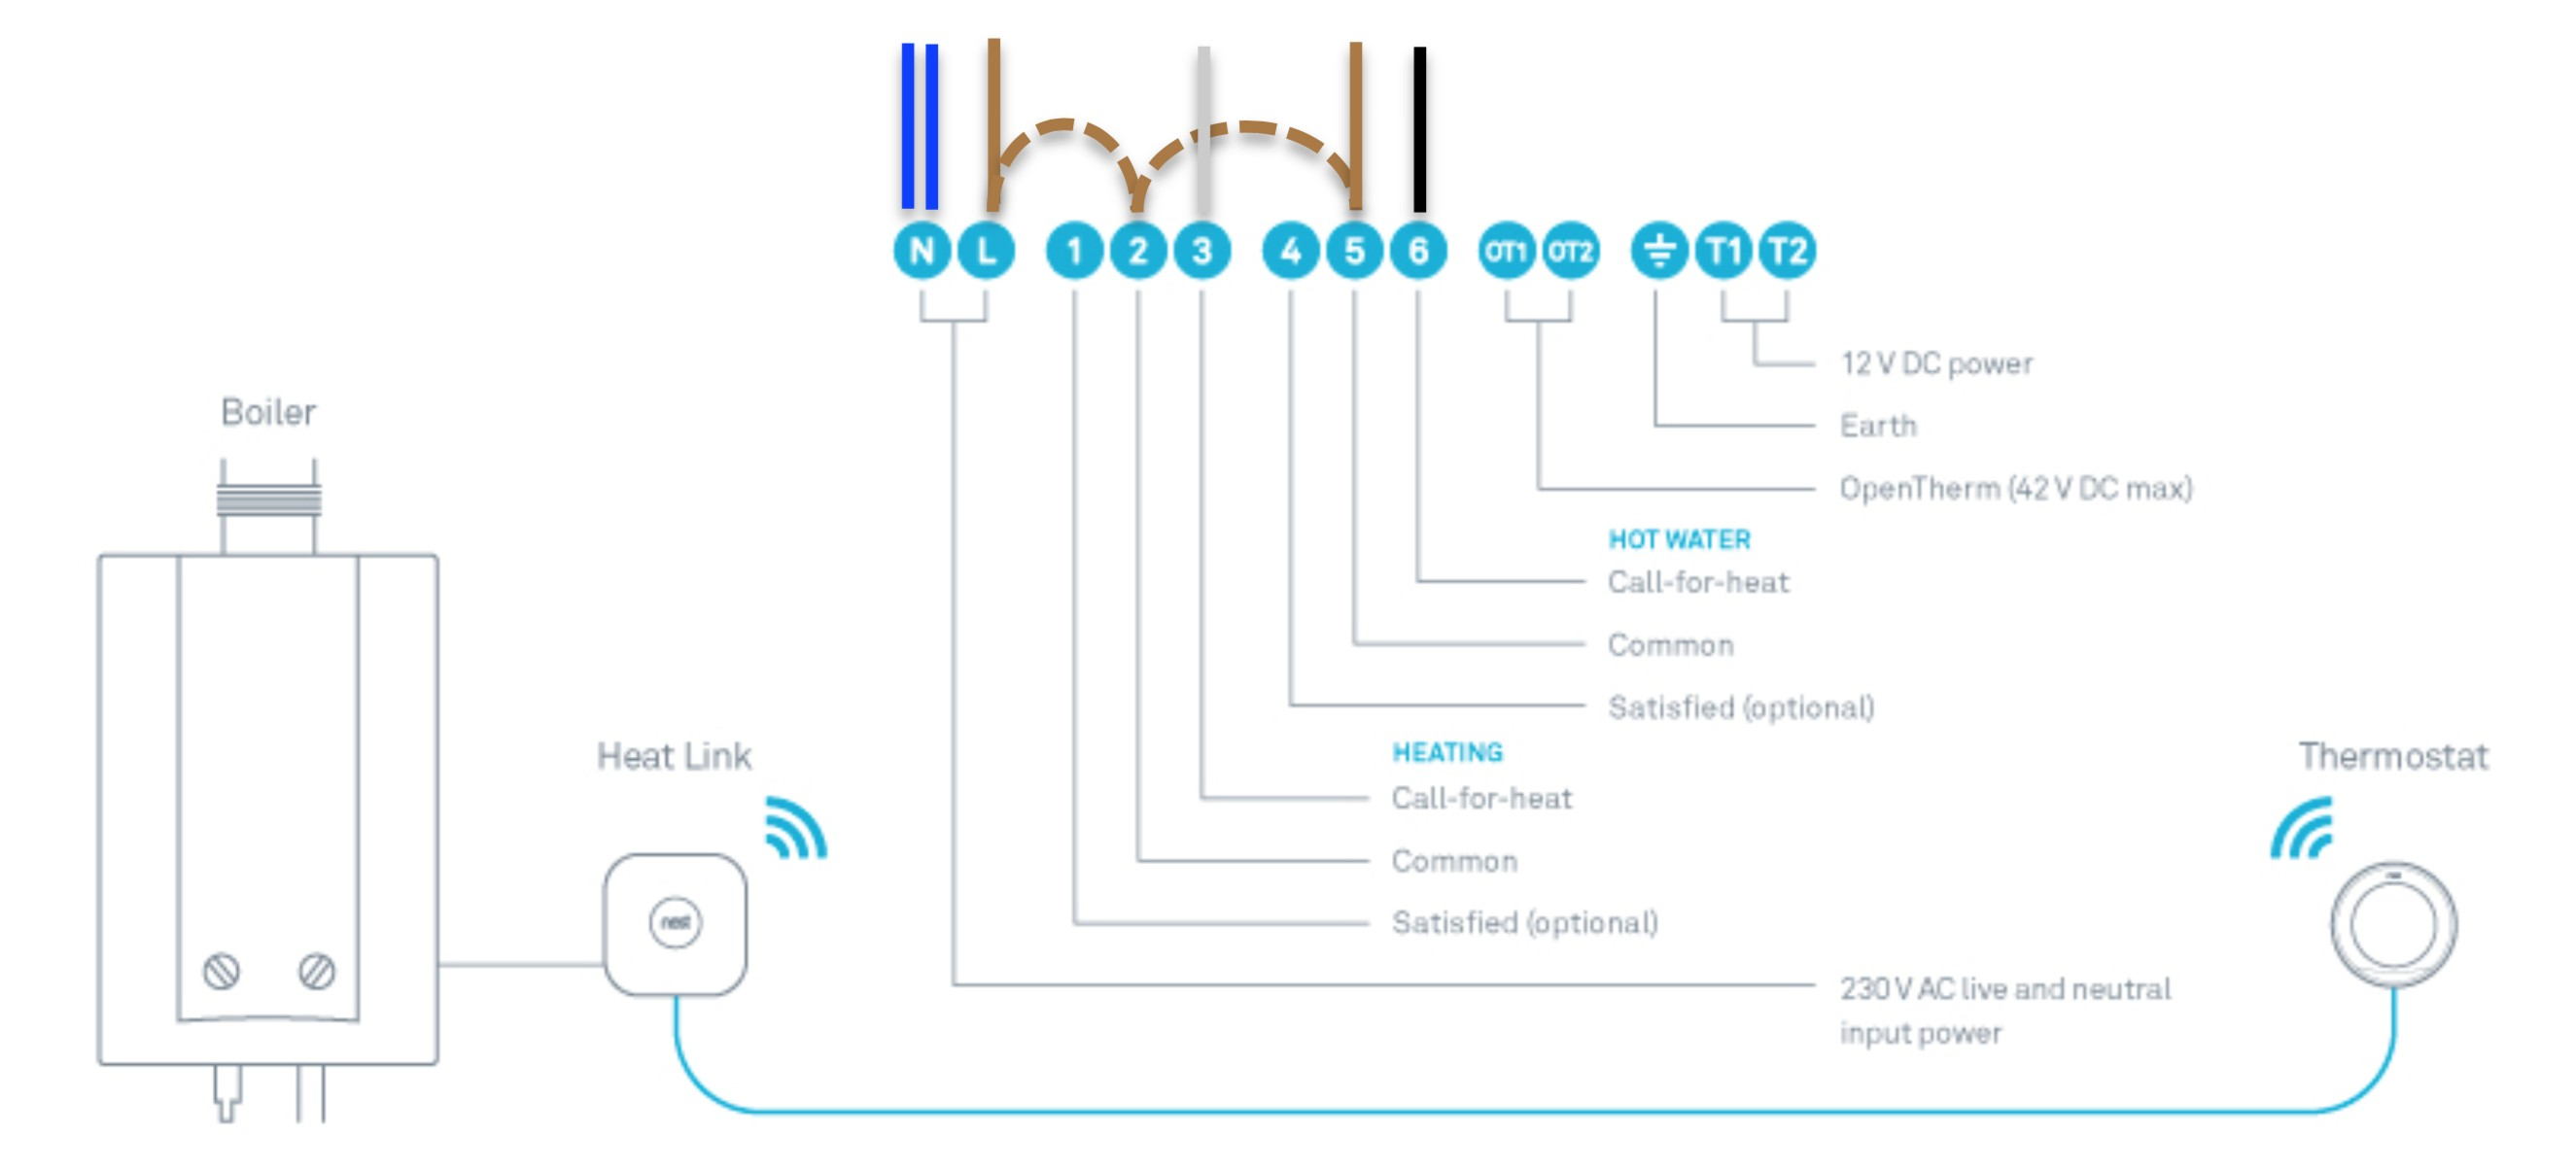 Nest thermostat Wiring Diagram New House Old Tech Replacing A Danfoss Tp9000 with A Nest 3rd Gen Of Nest thermostat Wiring Diagram